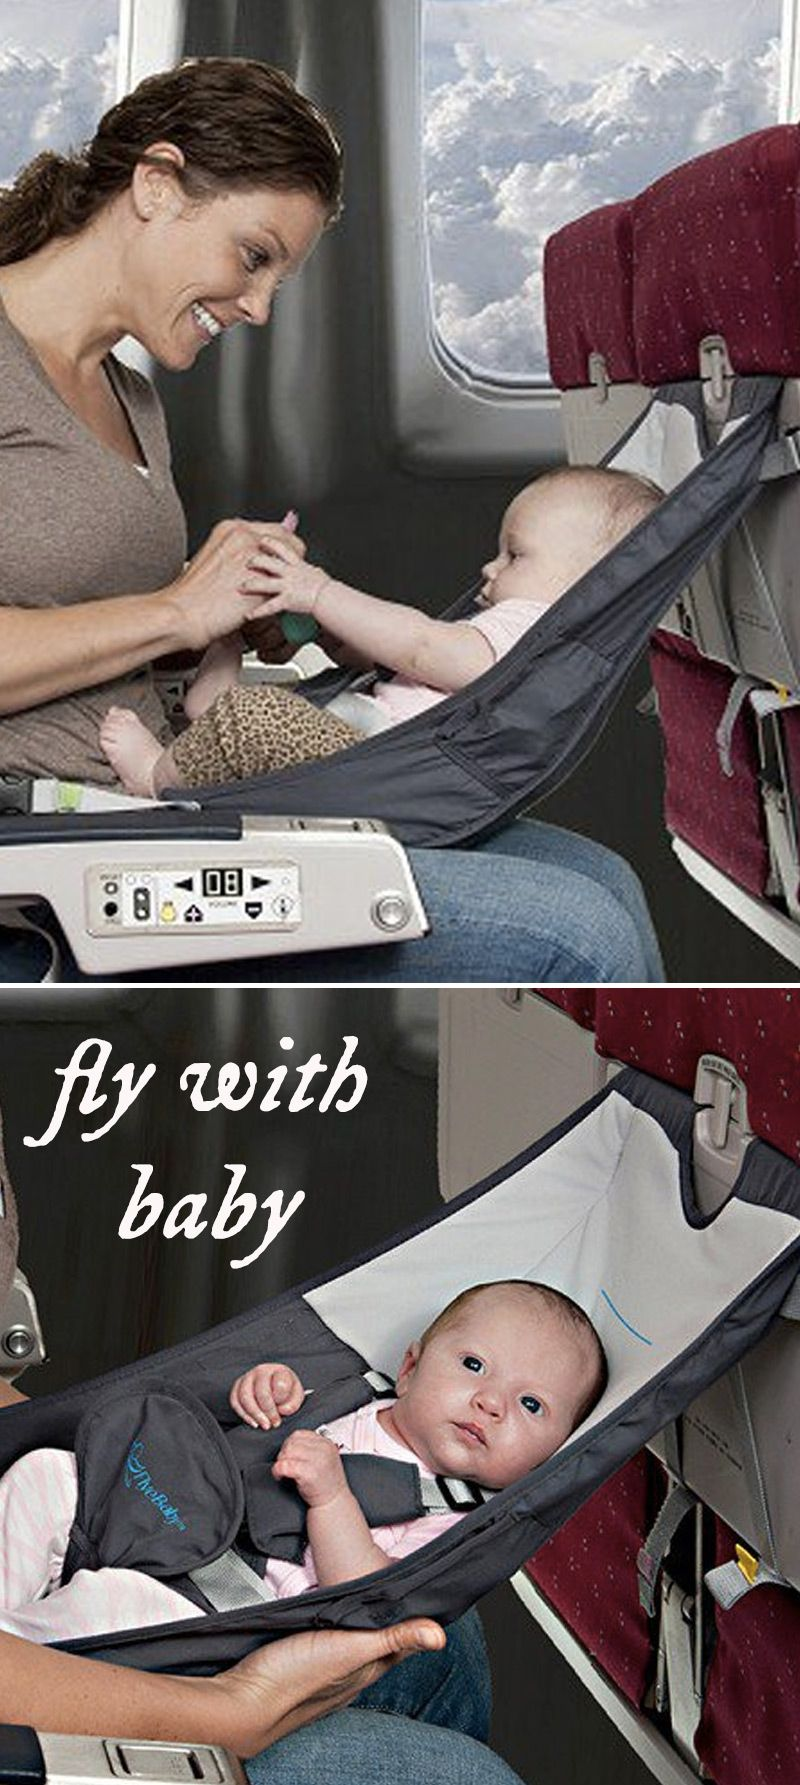 A Hammock Type Seat That Can Be Used On An Airplane During